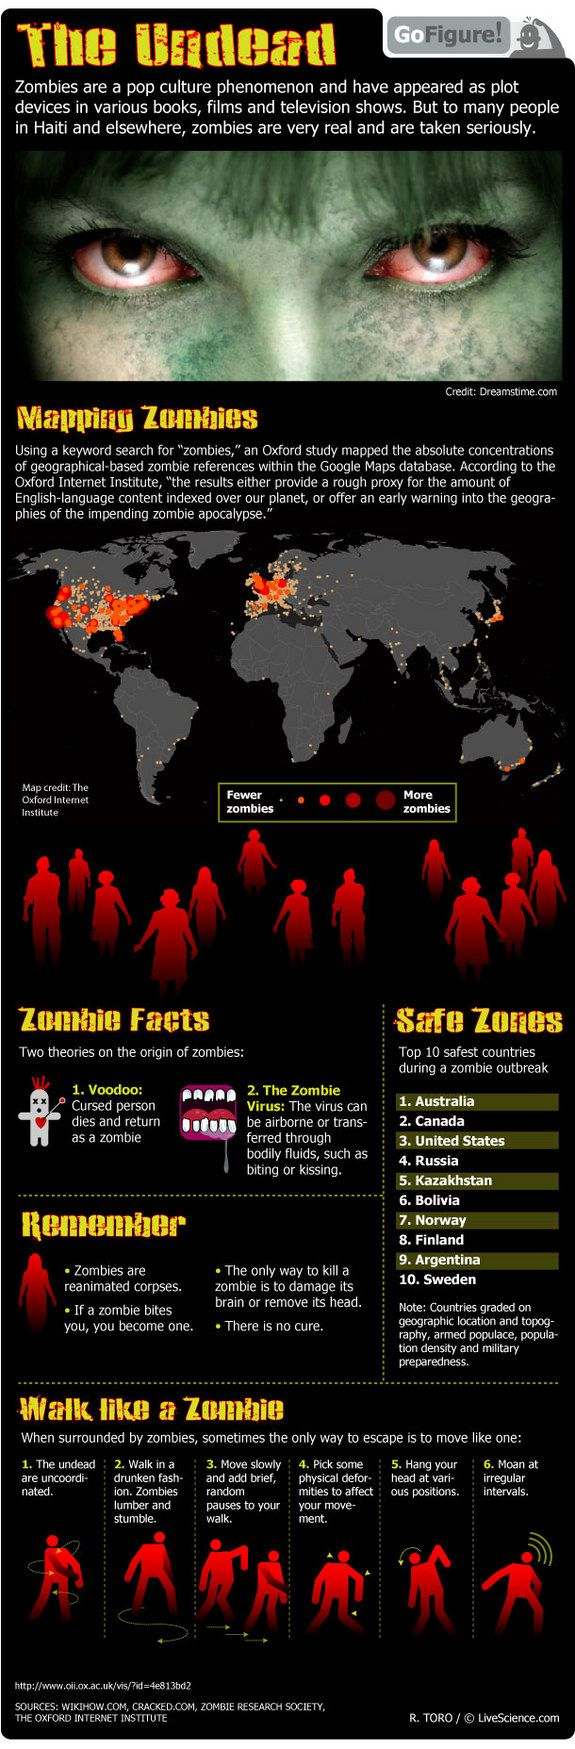 Check your knowledge of the undead - Zombie Facts: Real and Imagined